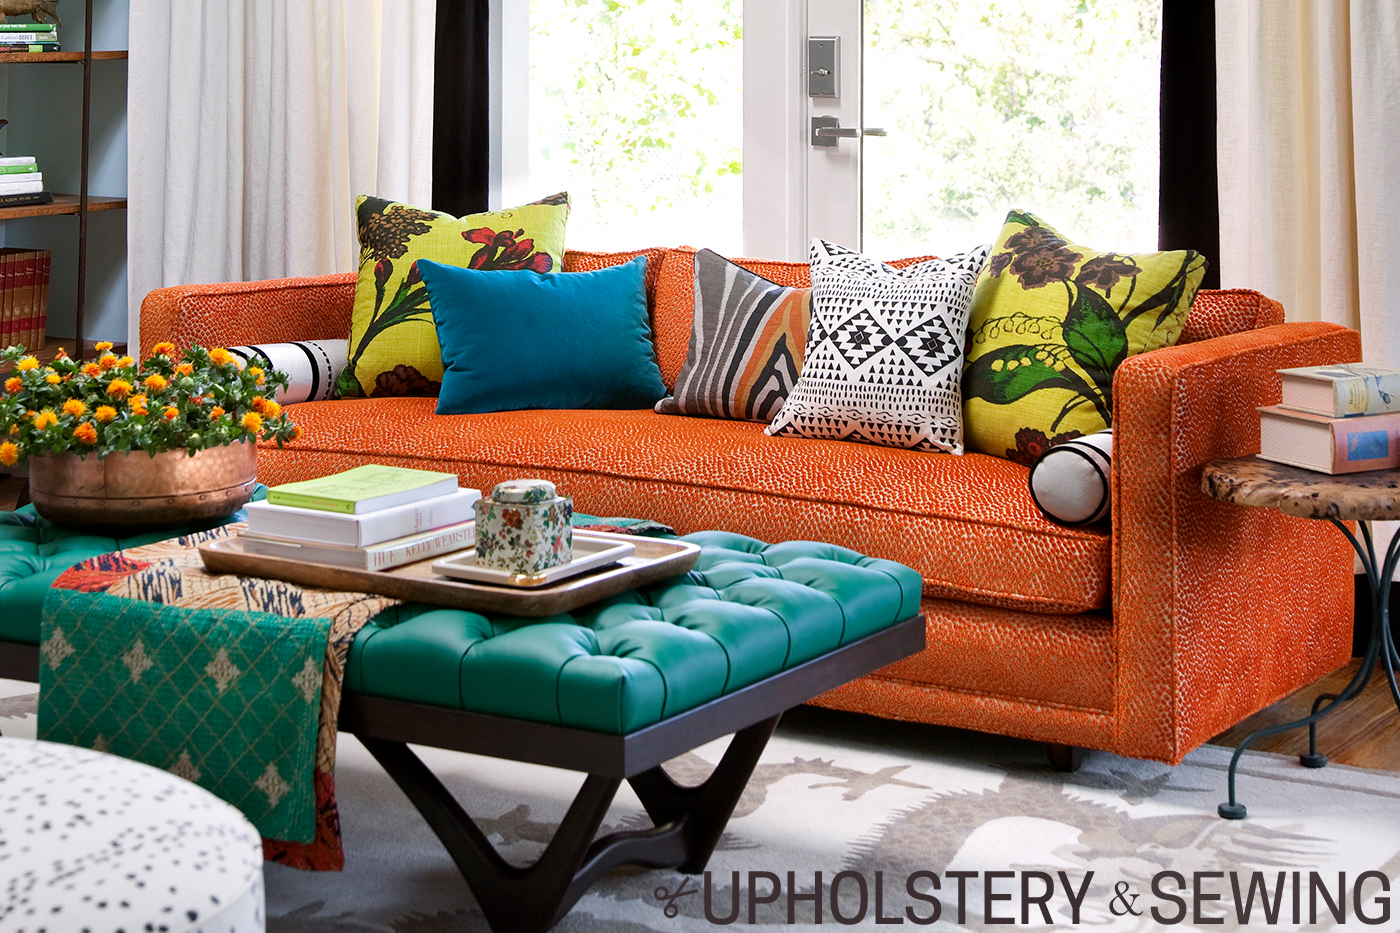 UPHOLSTERY&SEWING_SLIDE_B